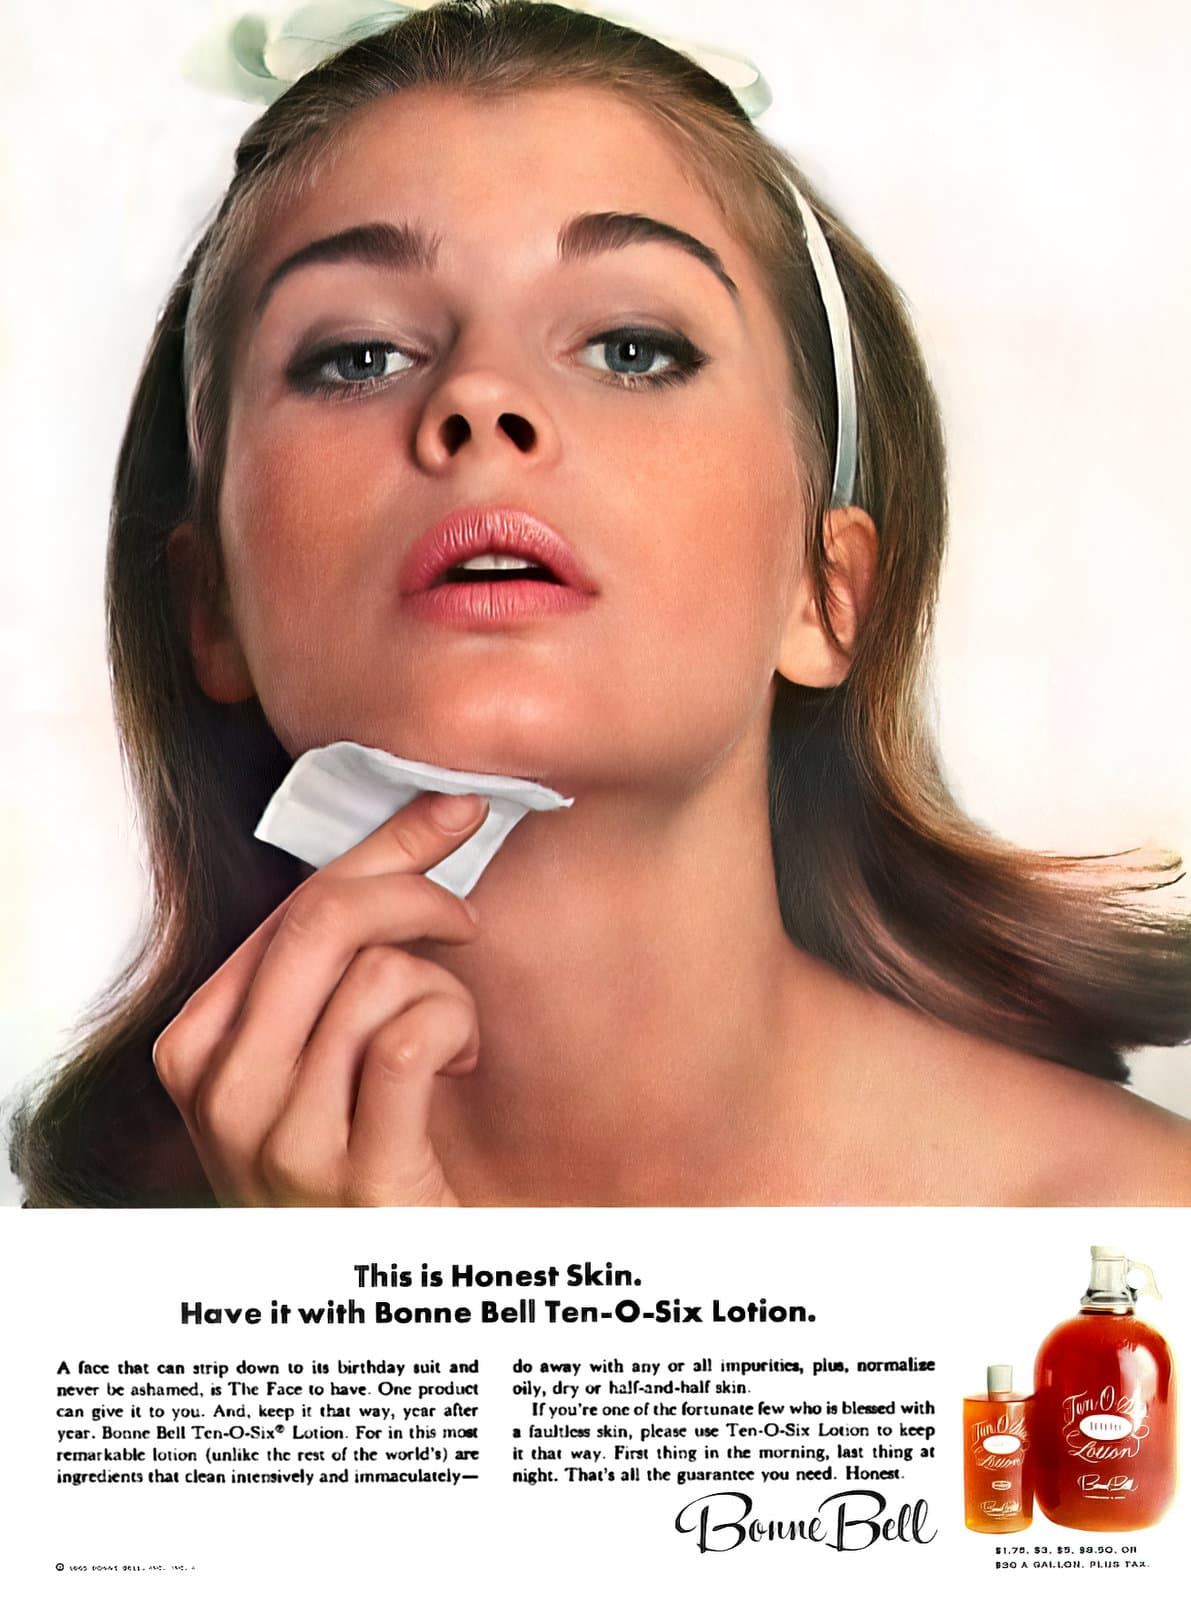 Young Candice Bergen for Bonne Bell Ten-O-Six lotion (1965)